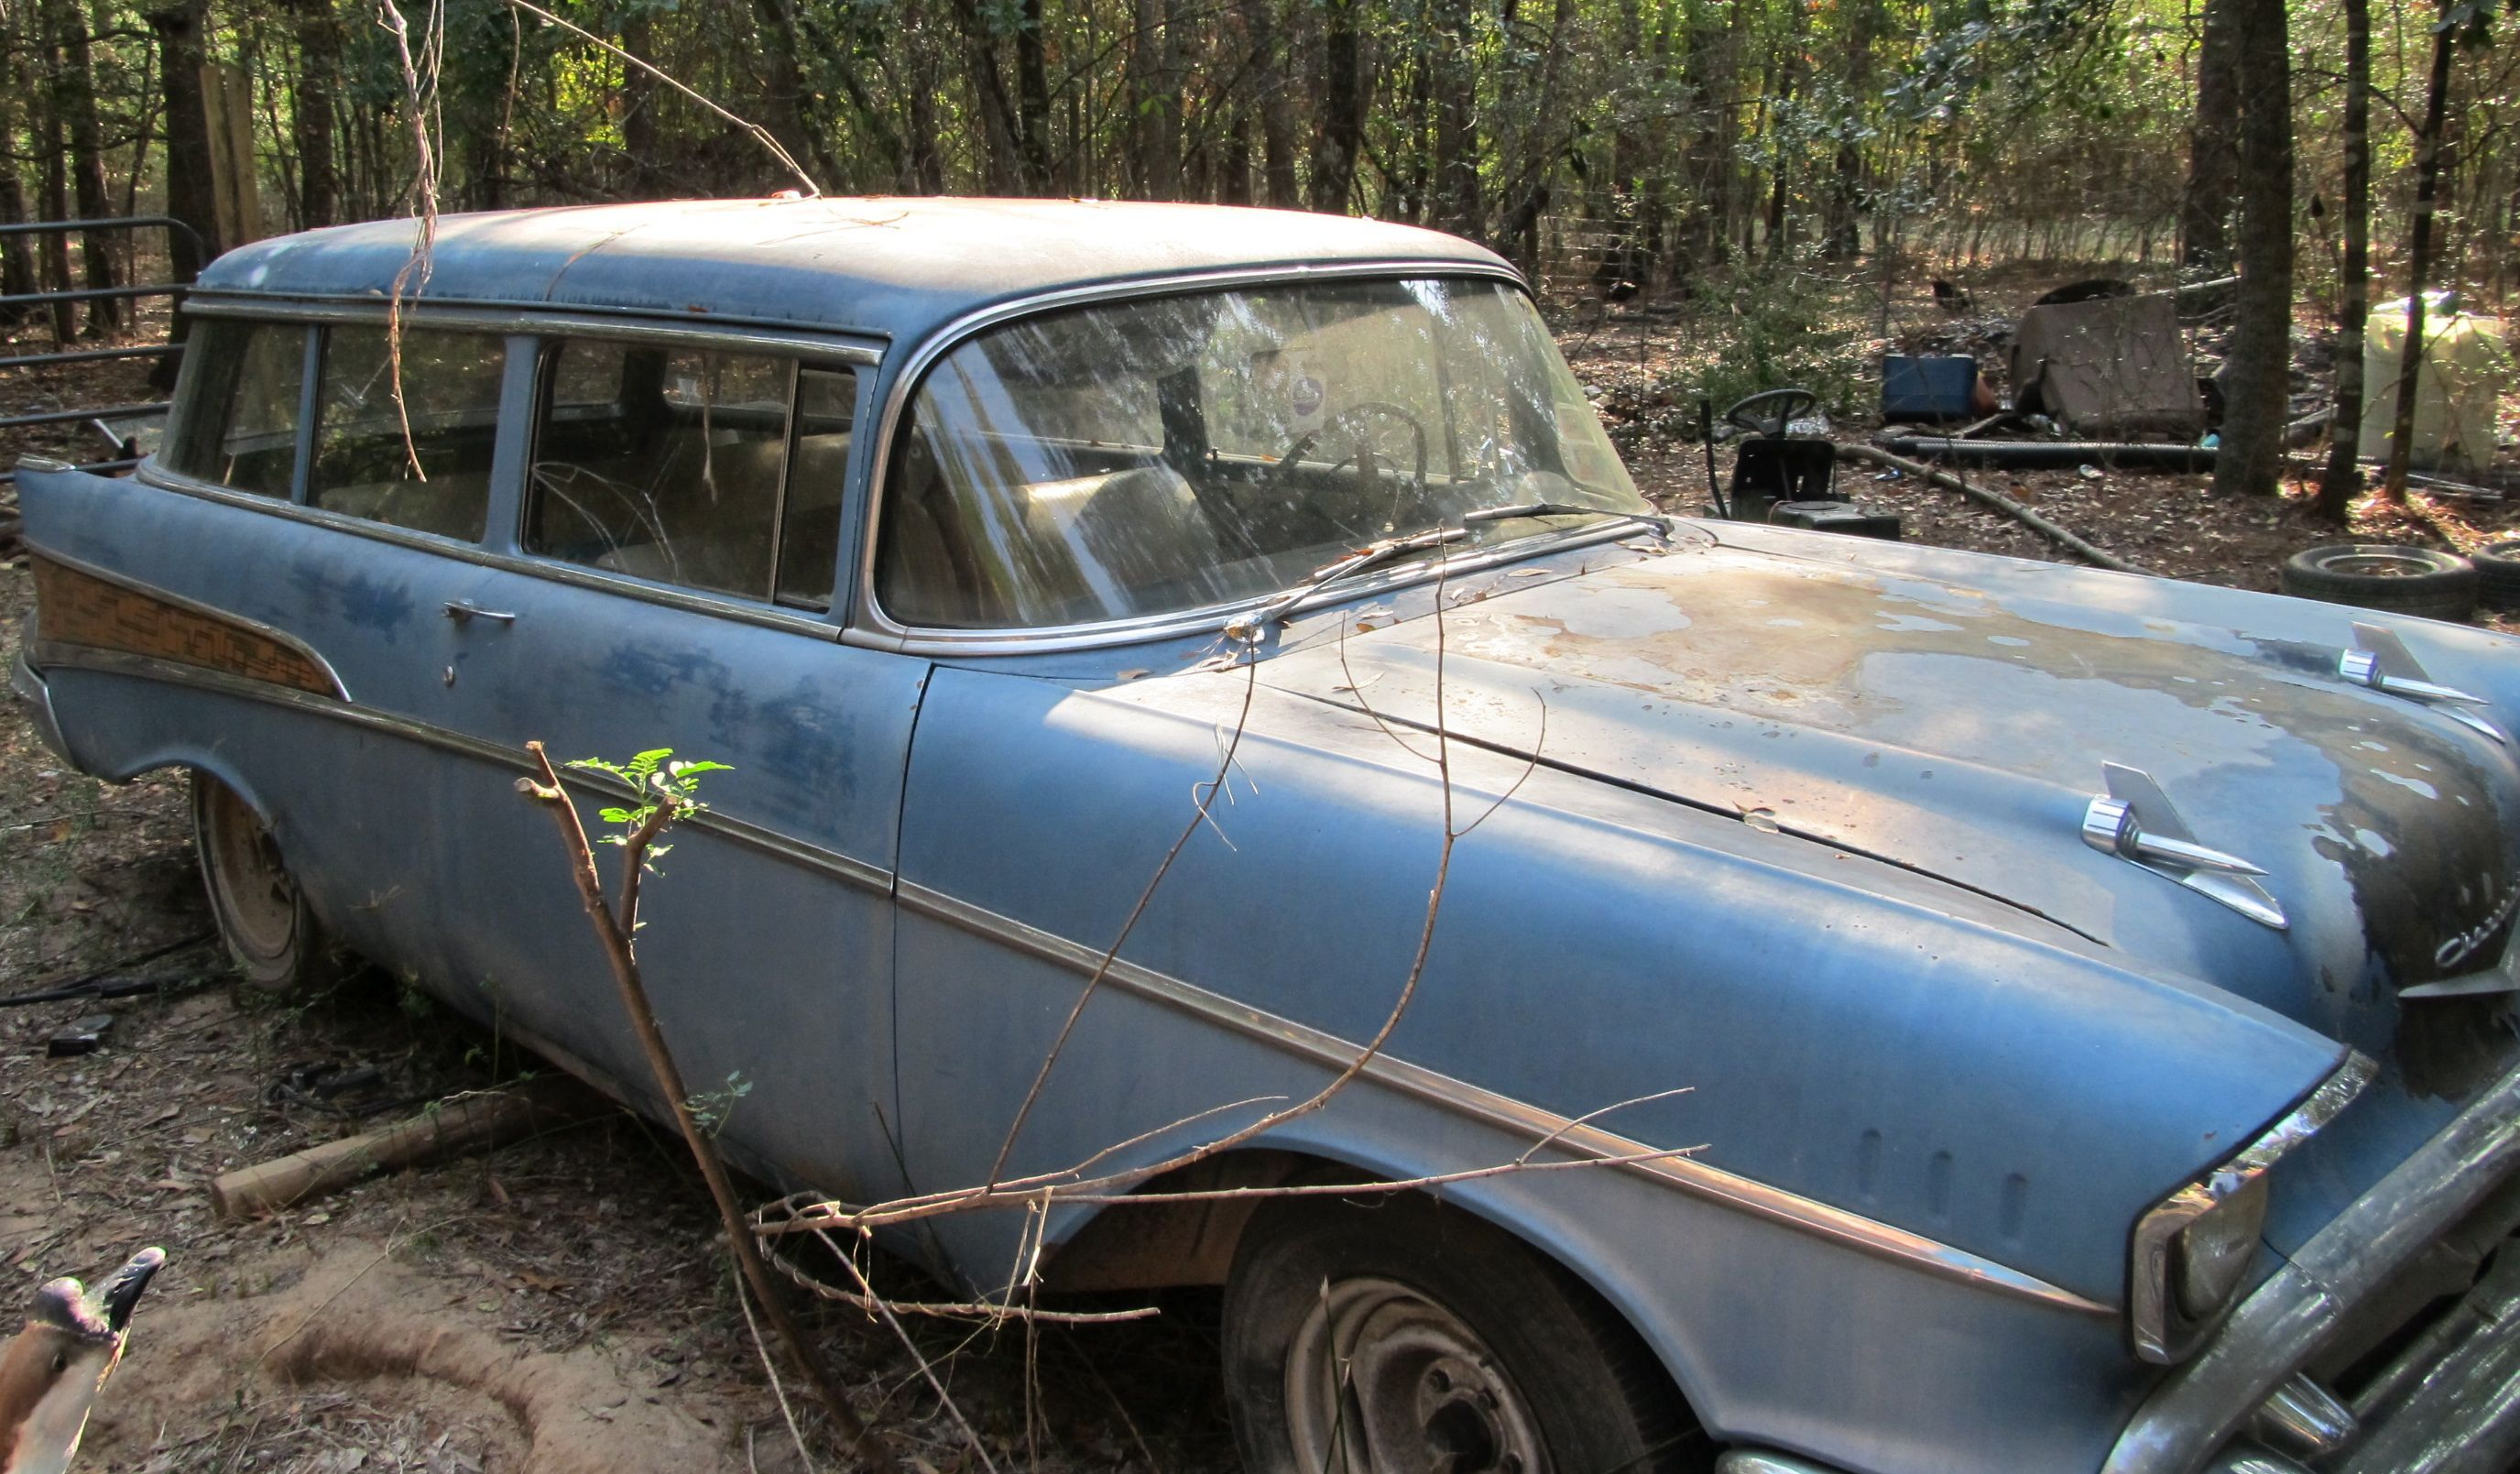 1957 Chevy | 57 chevy belairs | Pinterest | Abandoned, Barn finds ...